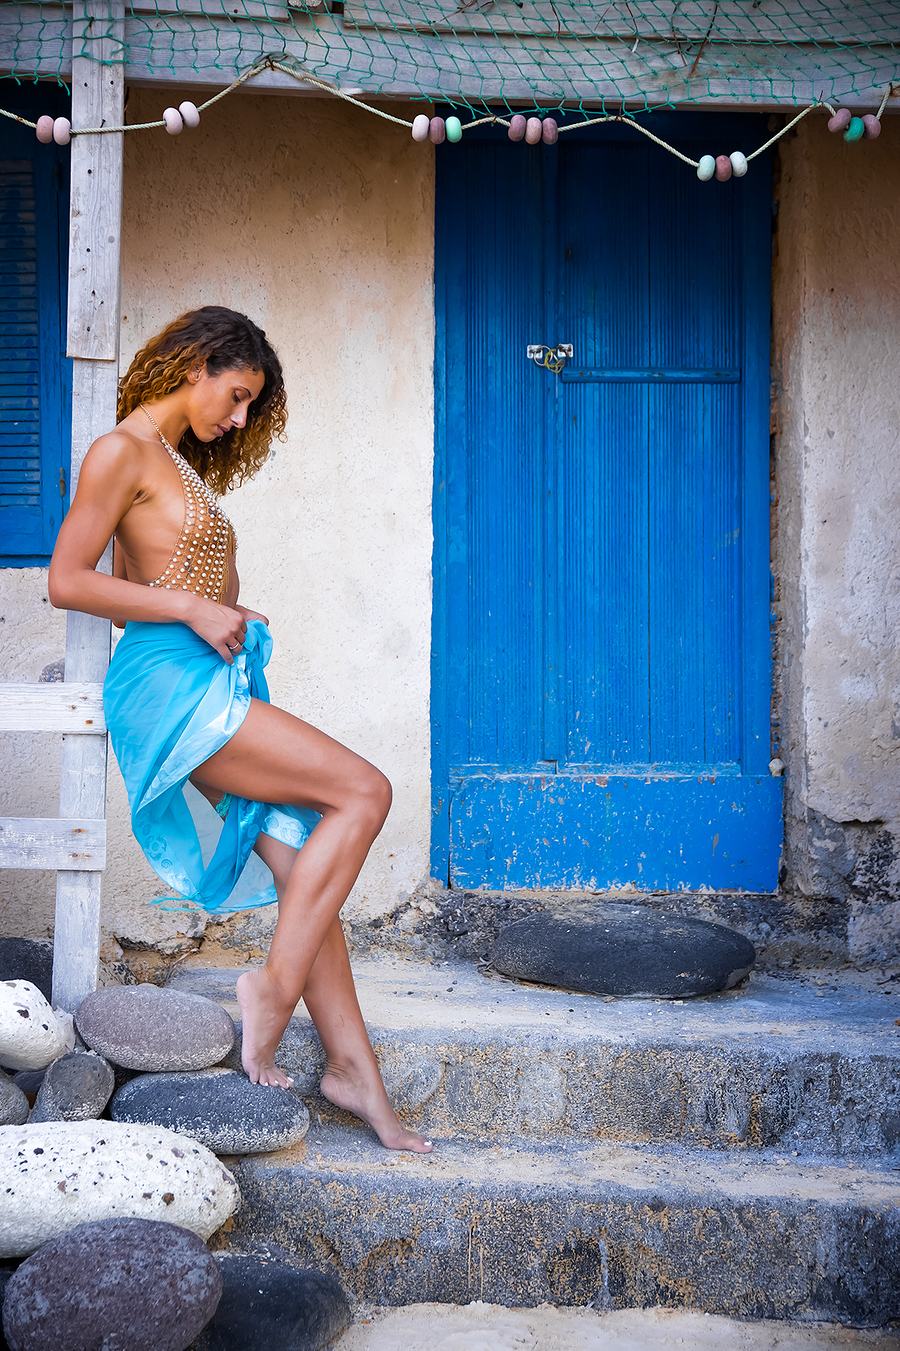 Xkes Santorini 2020 / Photography by JTD-Photography, Model xKes, Taken at Natural Light Spaces / Uploaded 8th November 2020 @ 03:40 PM